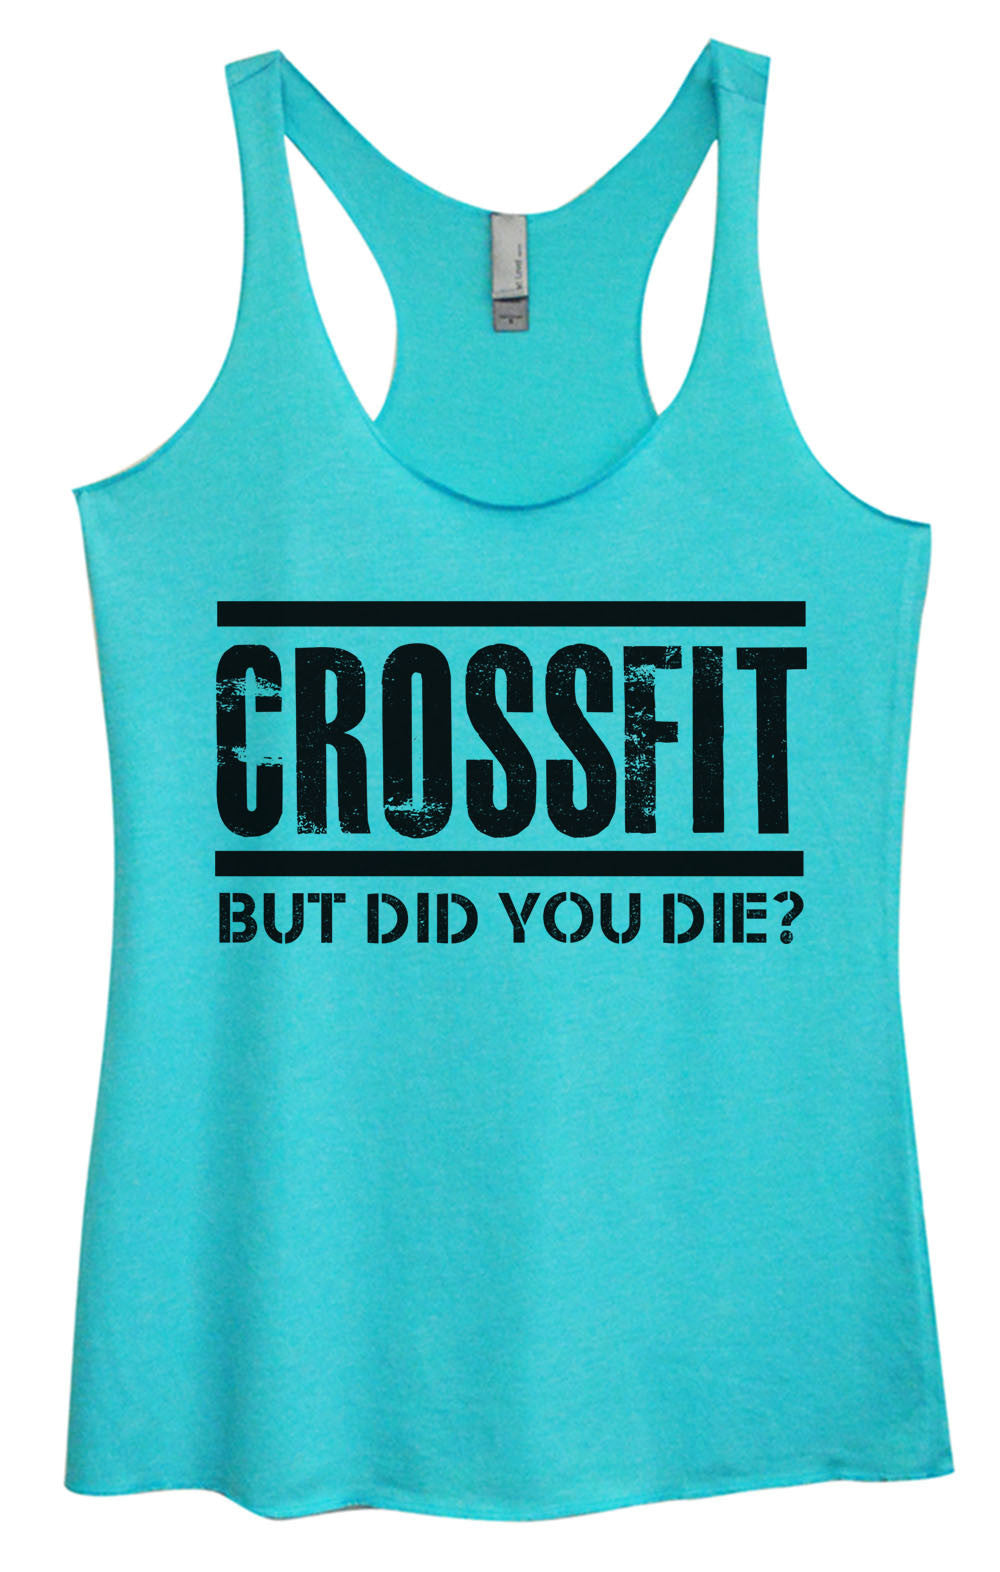 Womens Fashion Triblend Tank Top - Crossfit But Did You Die? - Tri-648 - Funny Shirts Tank Tops Burnouts and Triblends  - 2